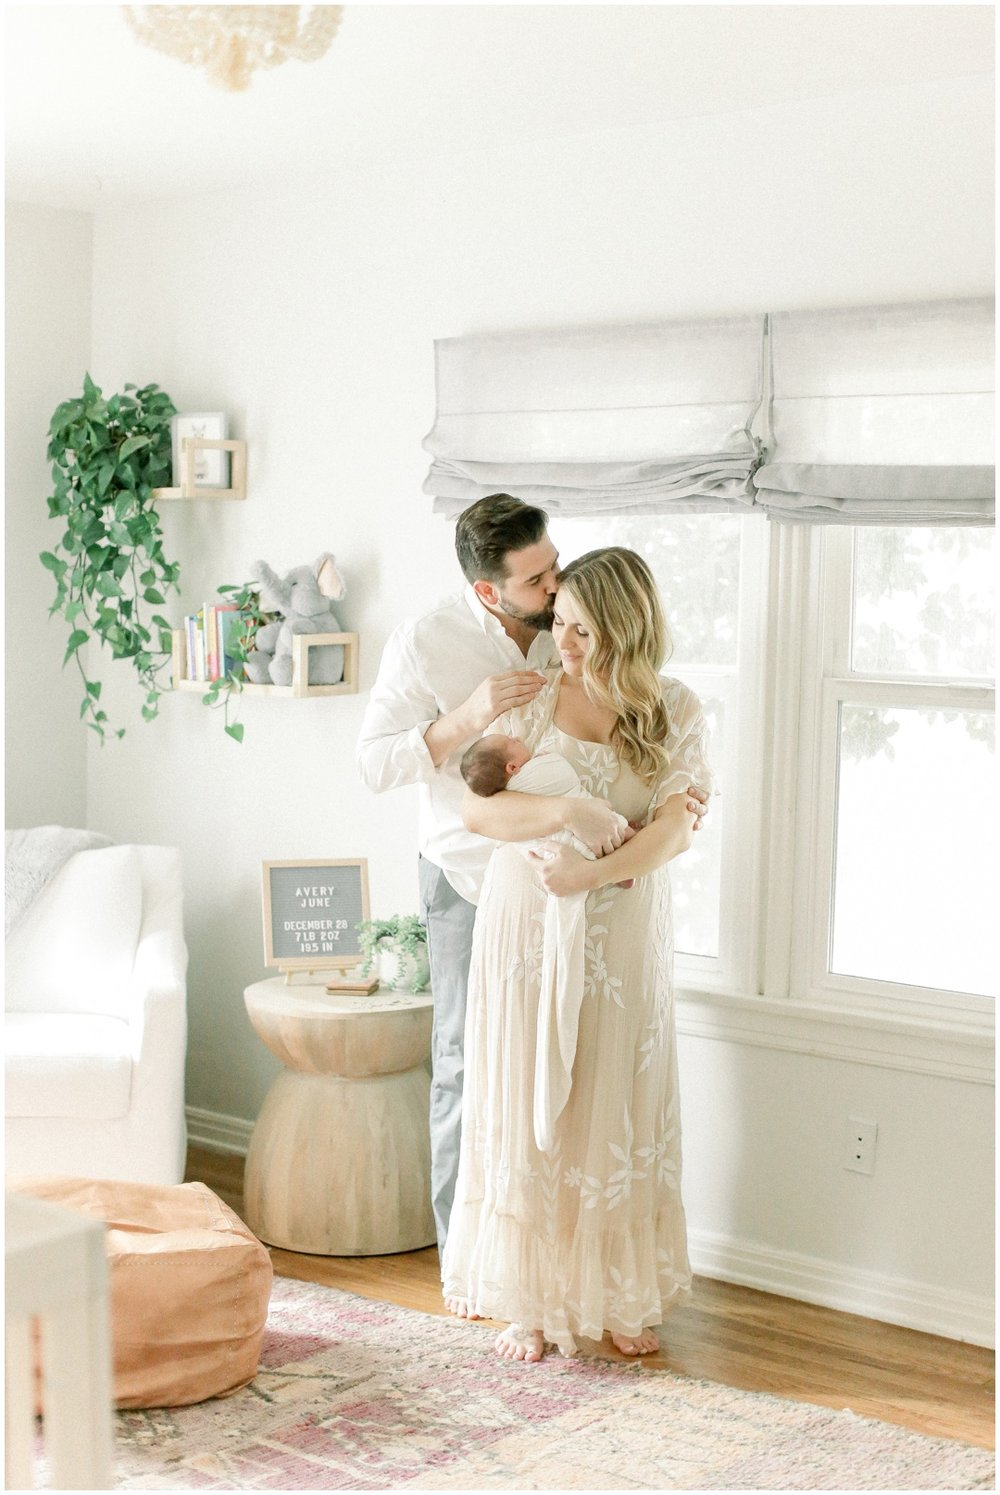 Newport_Beach_Newborn_Photographer_Newport_Beach_Maternity_Photographer_Orange_County_Family_Photographer_Cori_Kleckner_Photography_Huntington_Beach_Photographer__Erin_Dooney_Brandon_Dooney__Avery_Dooney_Family_Photos__2798.jpg